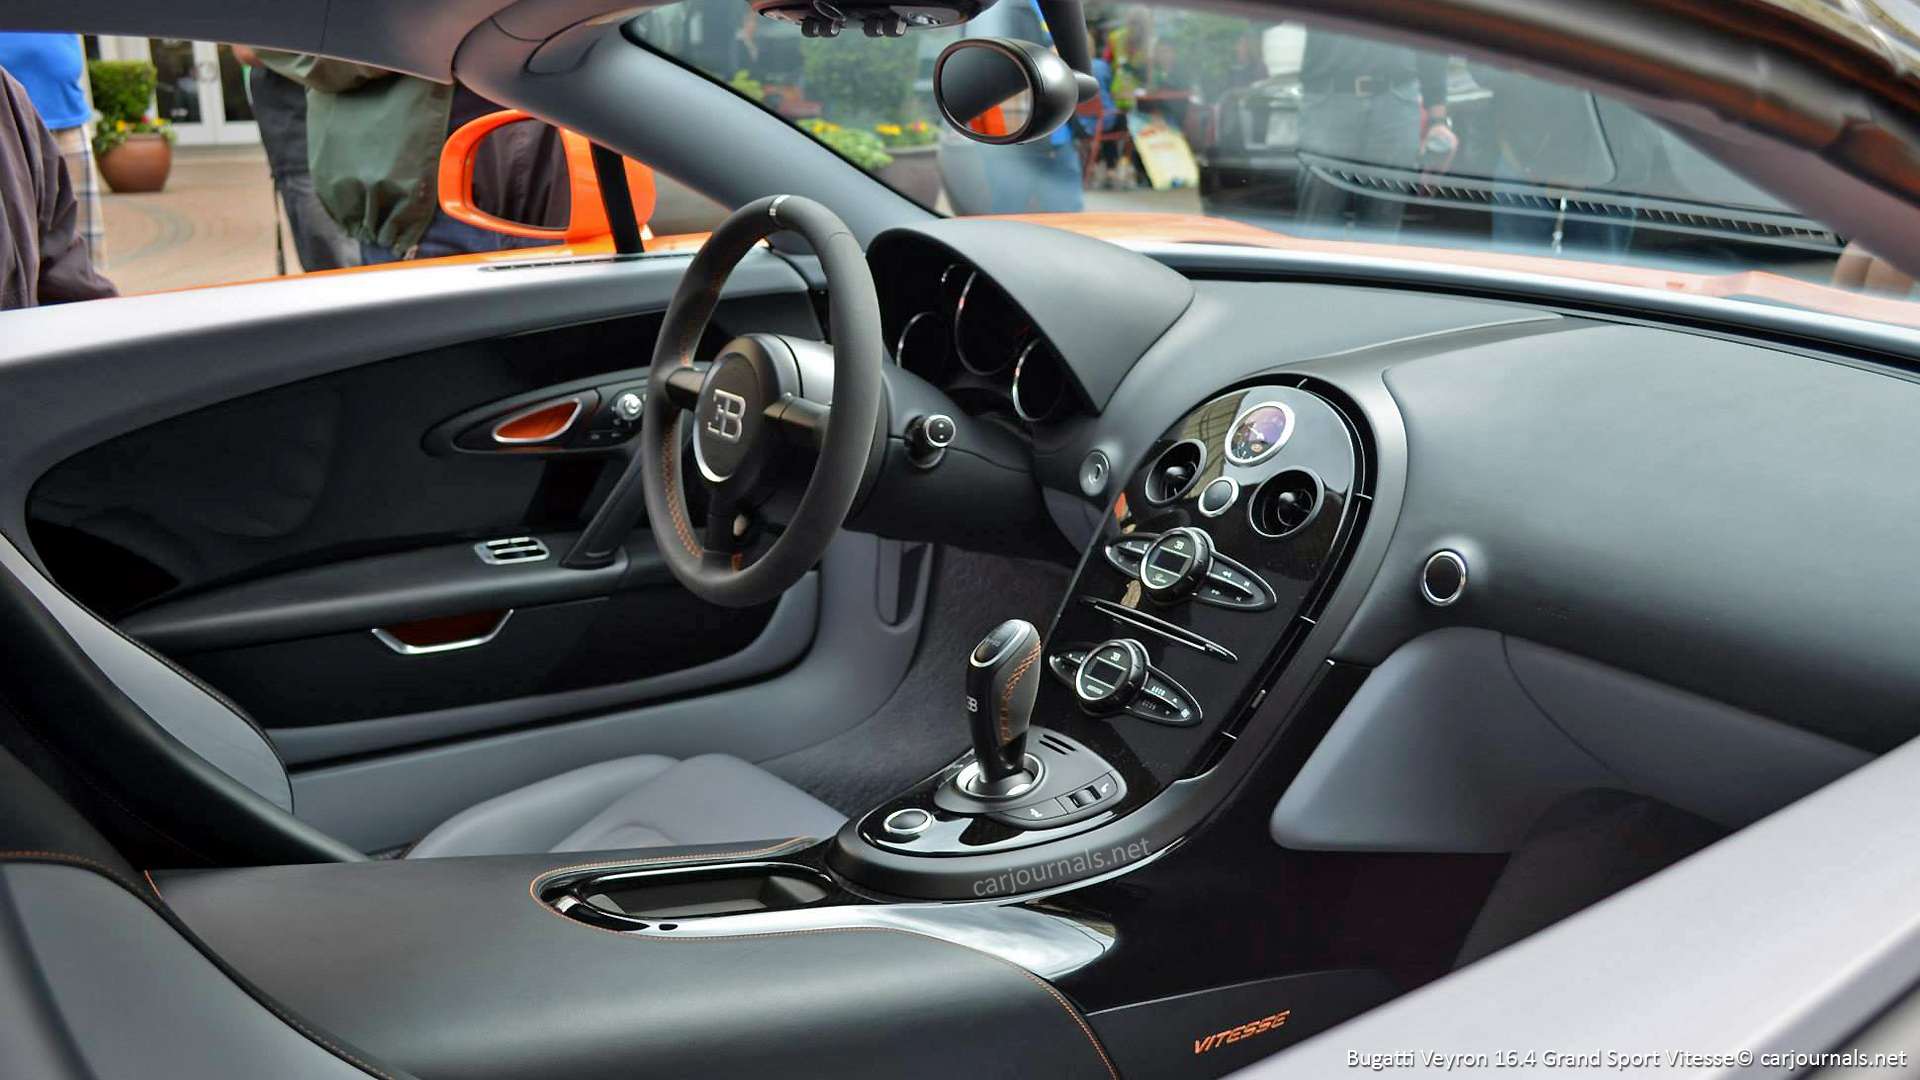 Bugatti Veyron 16 4 Grand Sport Vitesse Interior Hd Wallpaper